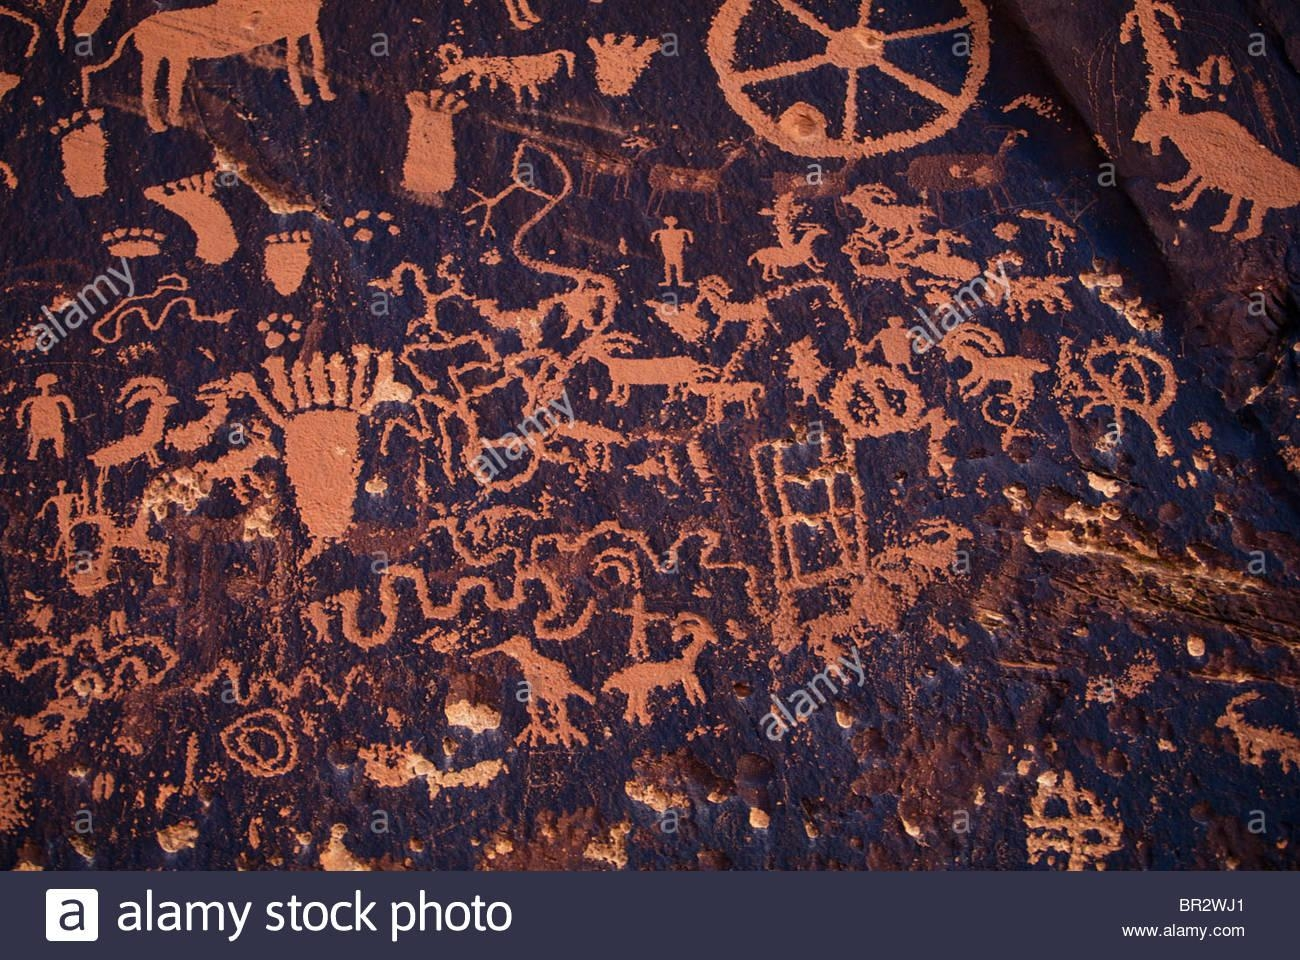 Native American Cave Art/wall Drawings Stock Photo, Royalty Free Pertaining To Native American Wall Art (View 12 of 20)